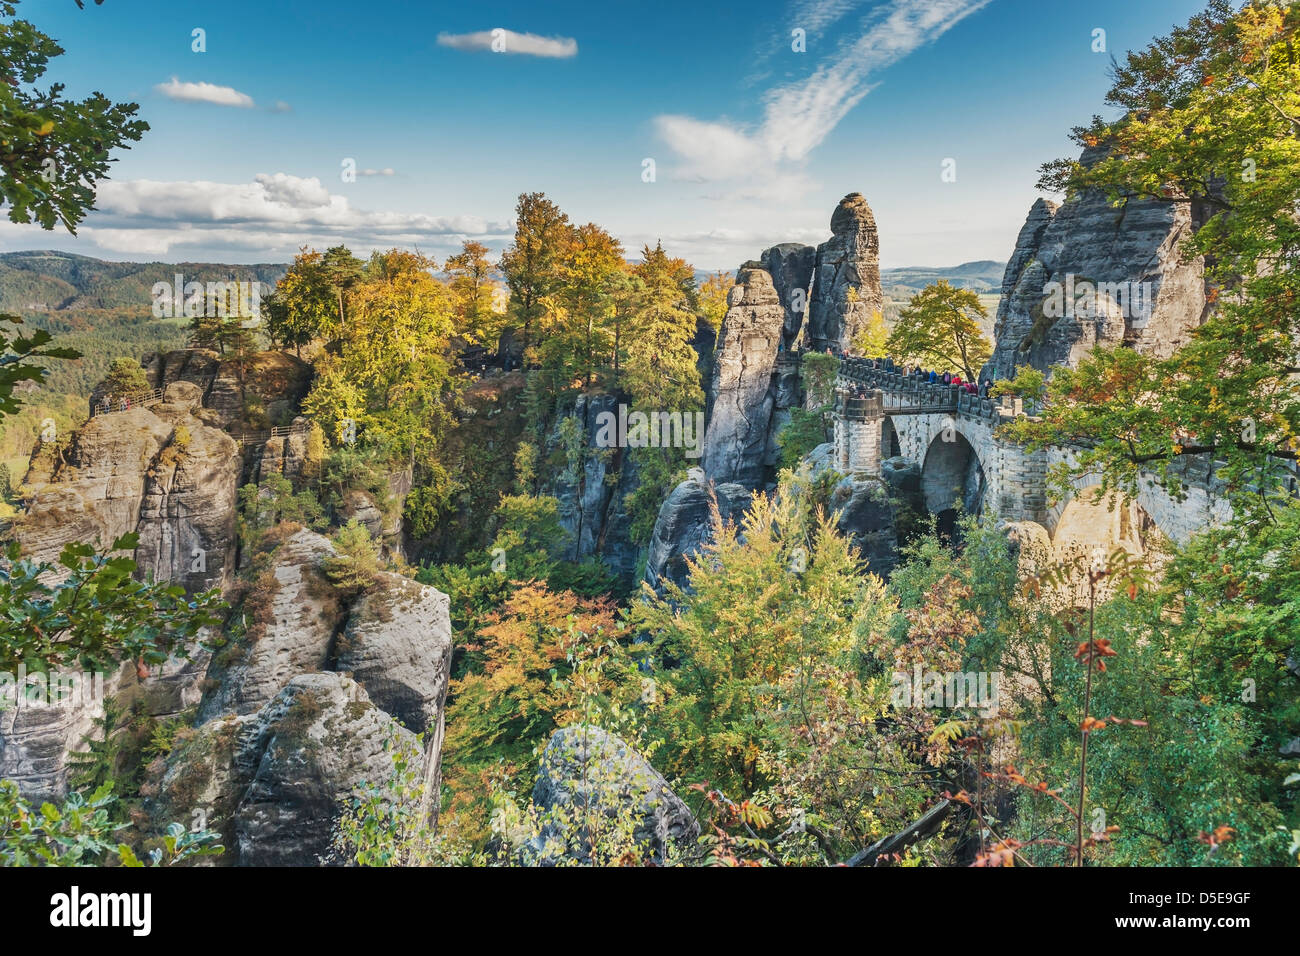 Rock formation Bastei (Bastion) and Bridge, Lohmen, Saxon Switzerland near Dresden, Saxony, Germany, Europe - Stock Image